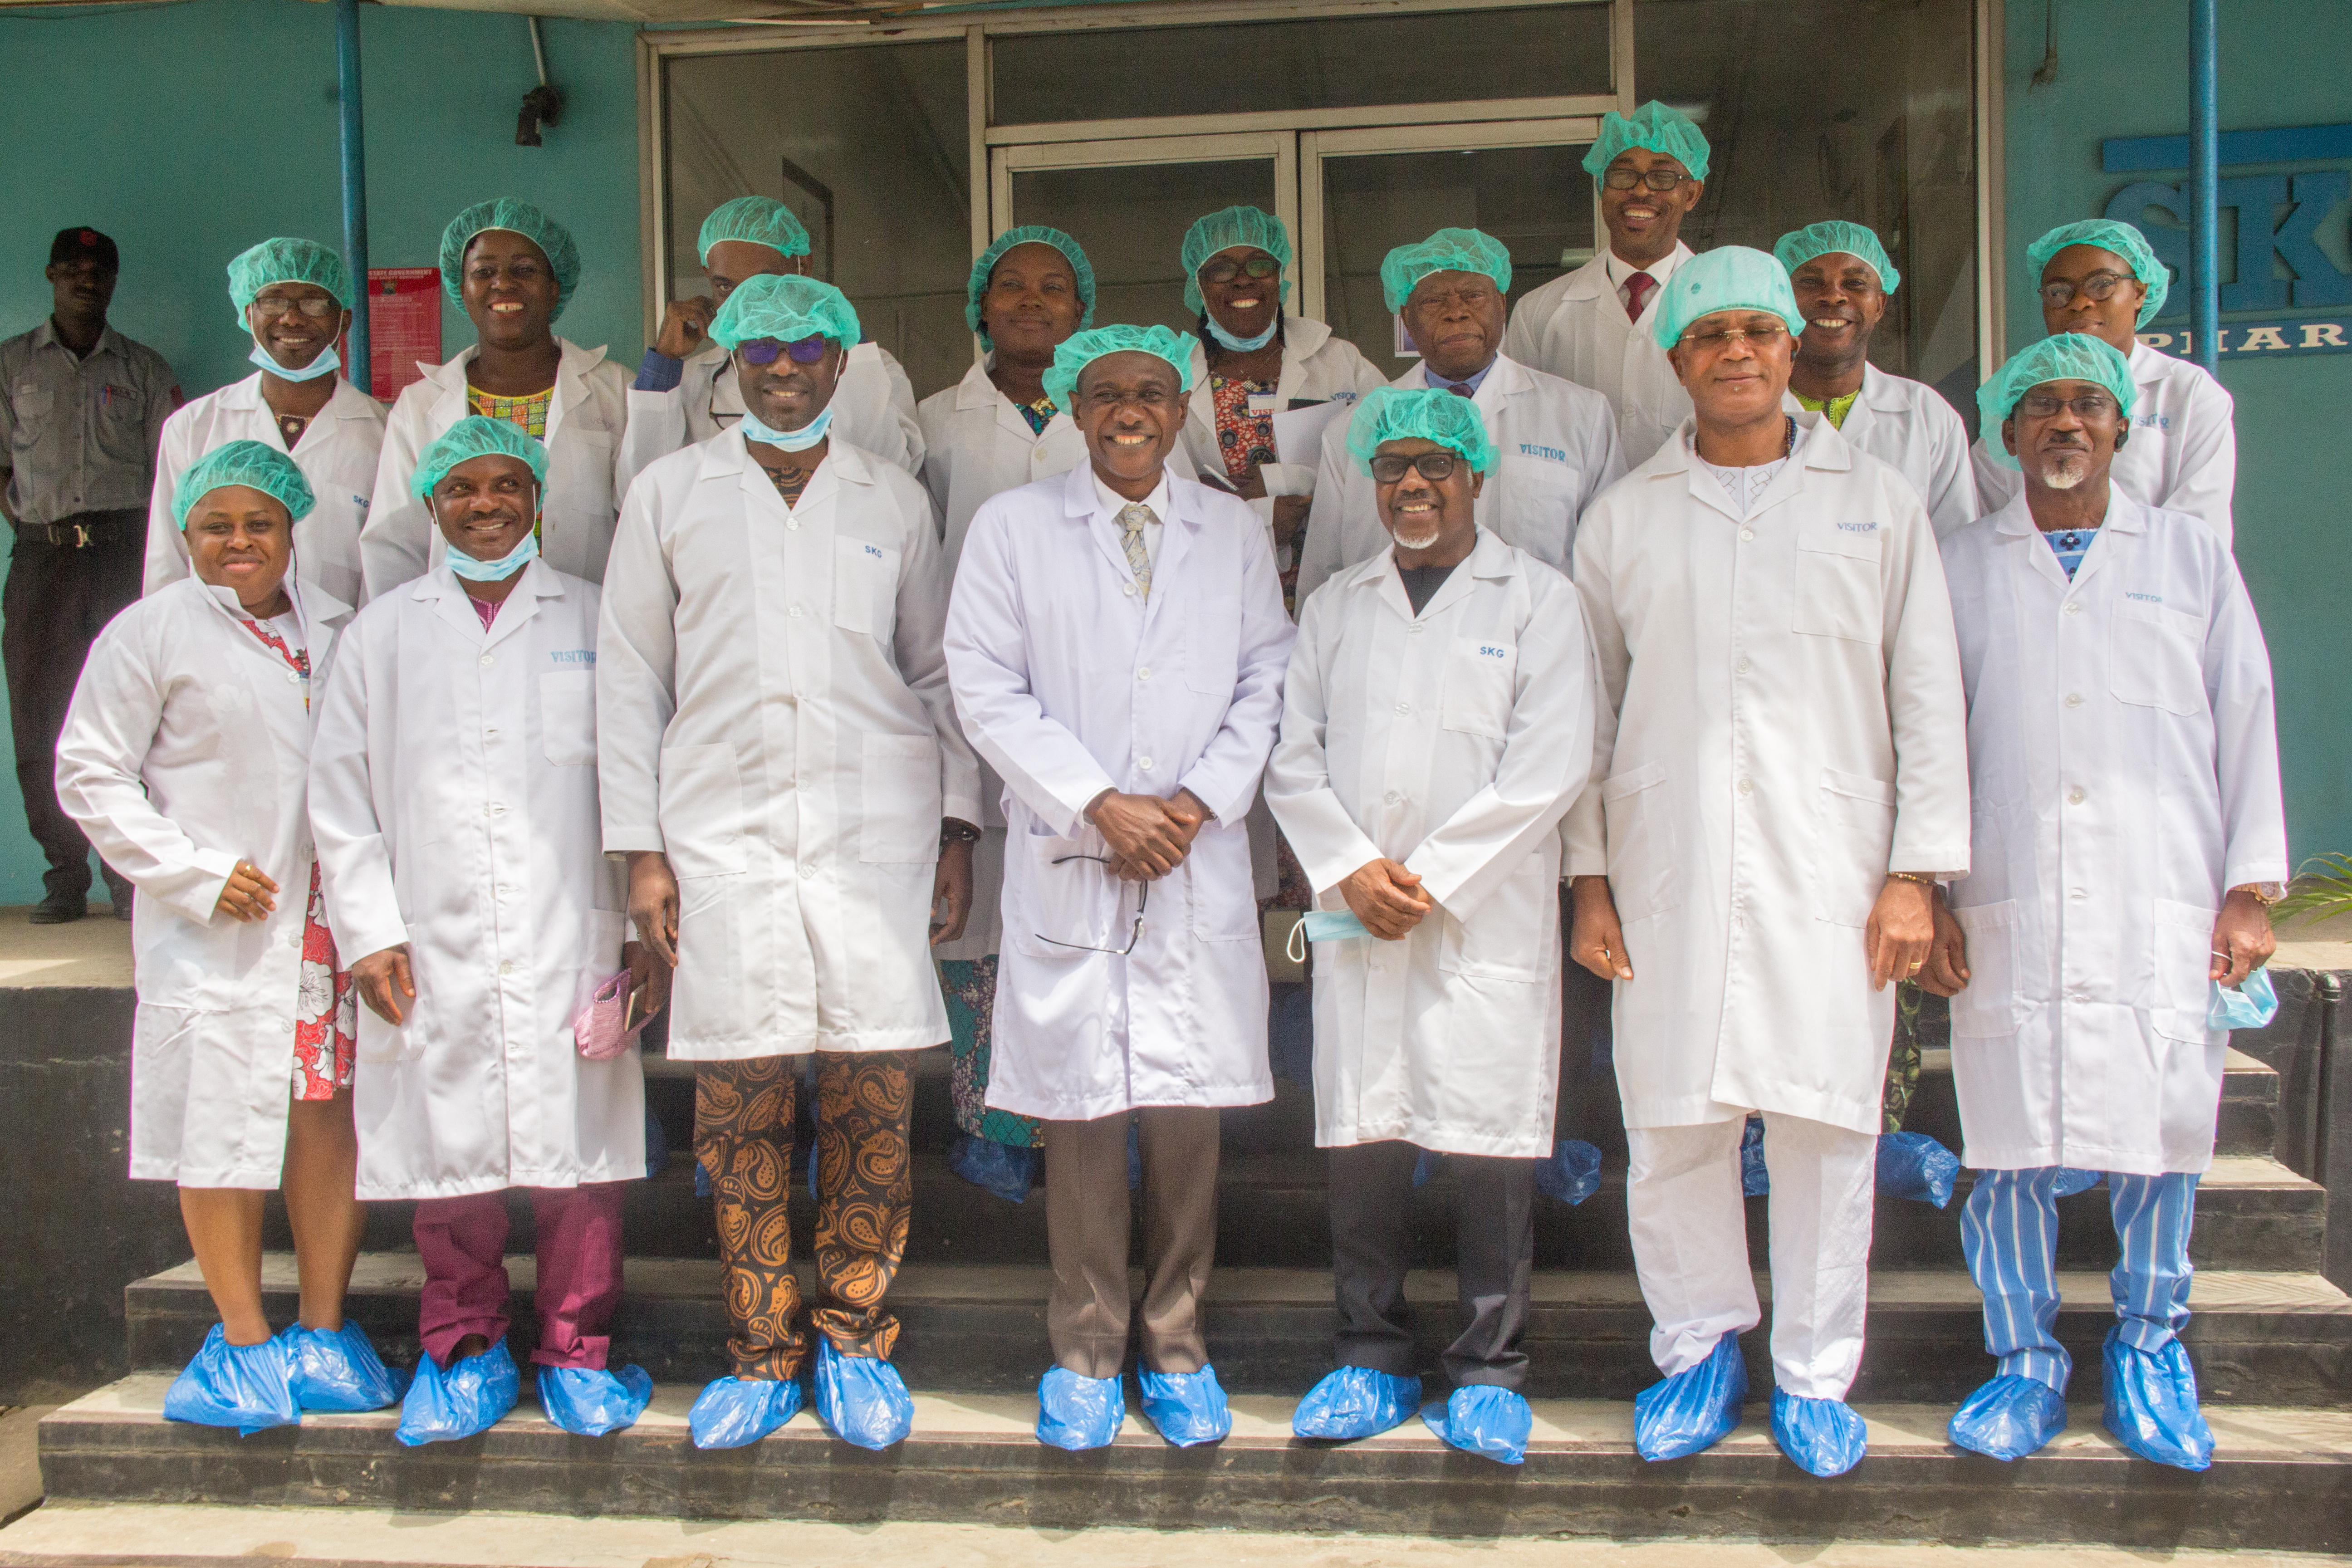 A group photograph after the tour of SKG Pharma Ltd